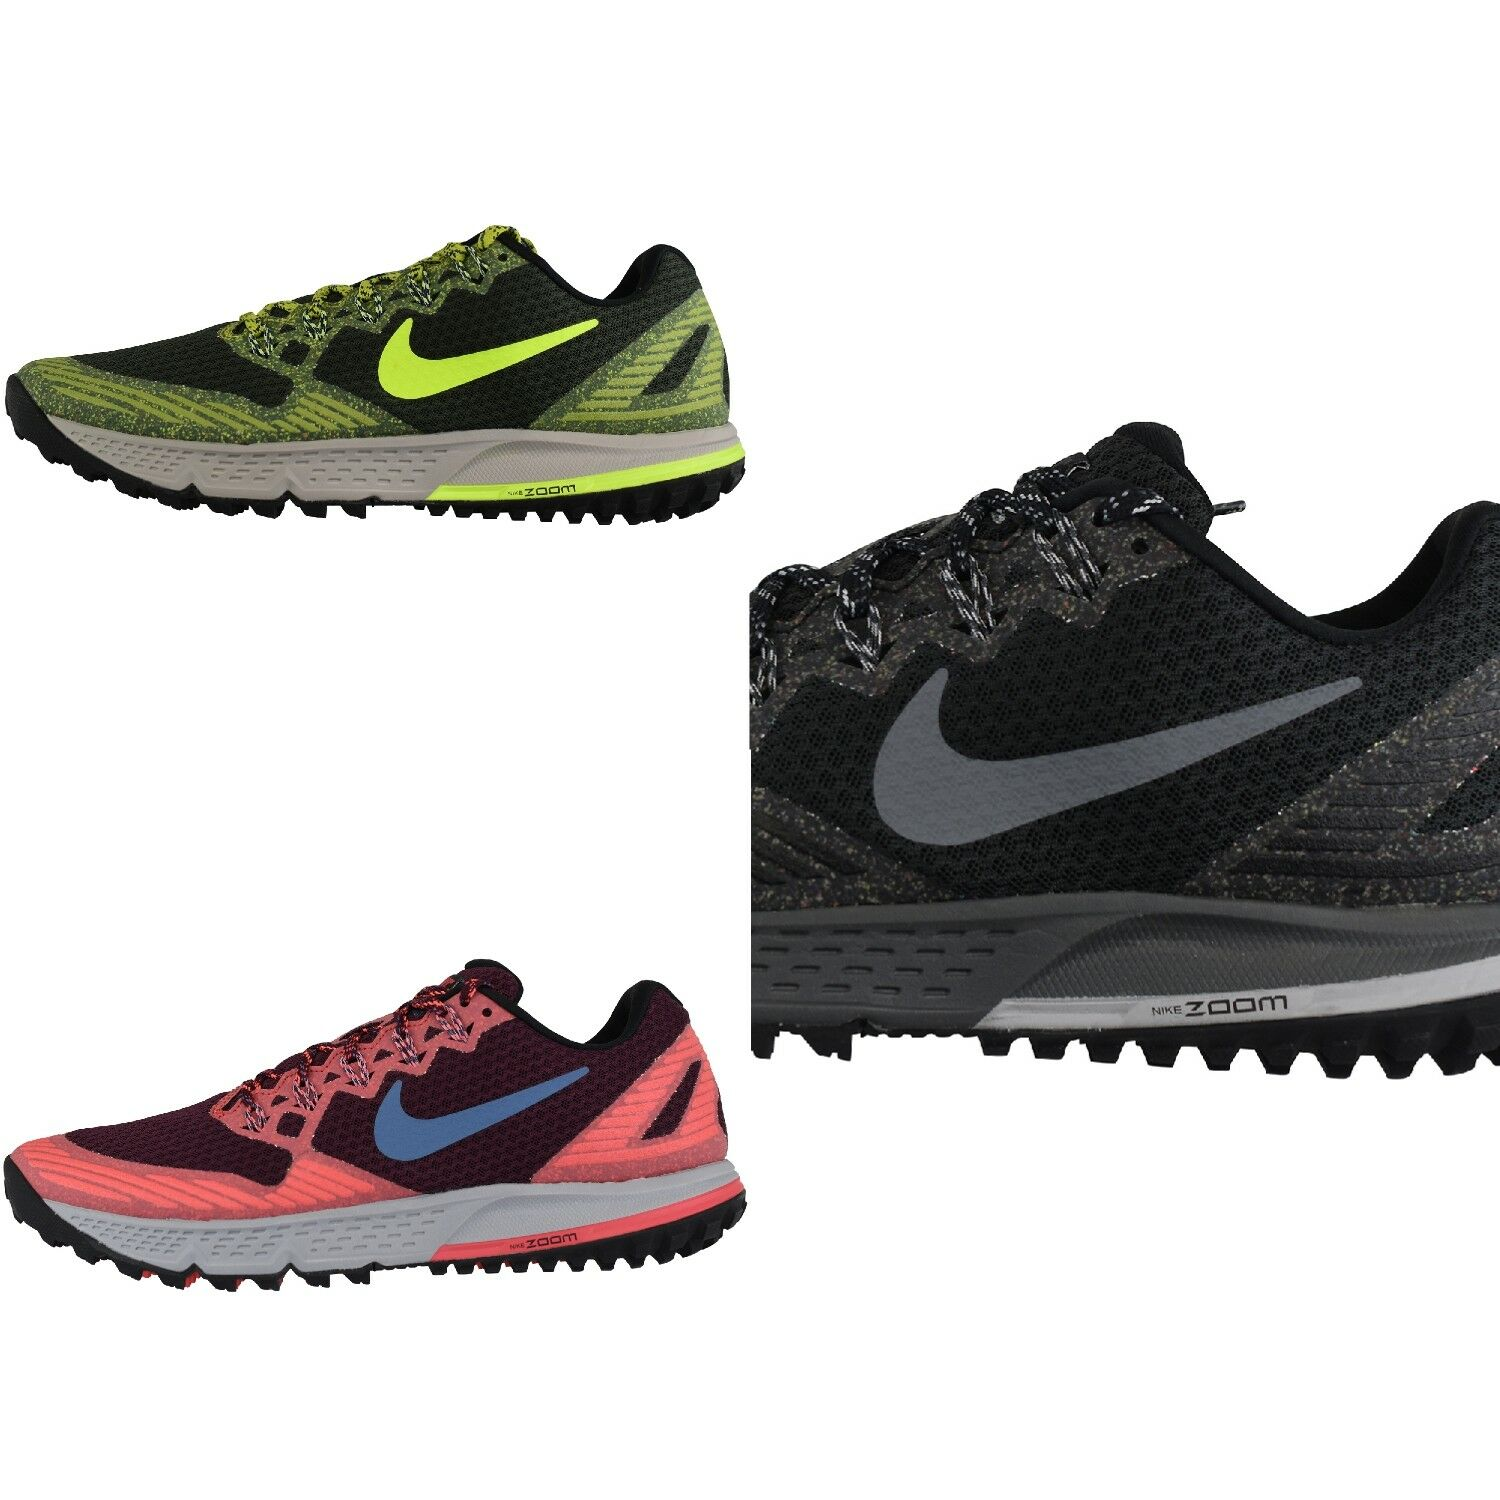 buy popular 7893b 6358d Nike Air Zoom Cheval Sauvage 3 Chaussure de Course Course Course Baskets  sport Textile bd860c